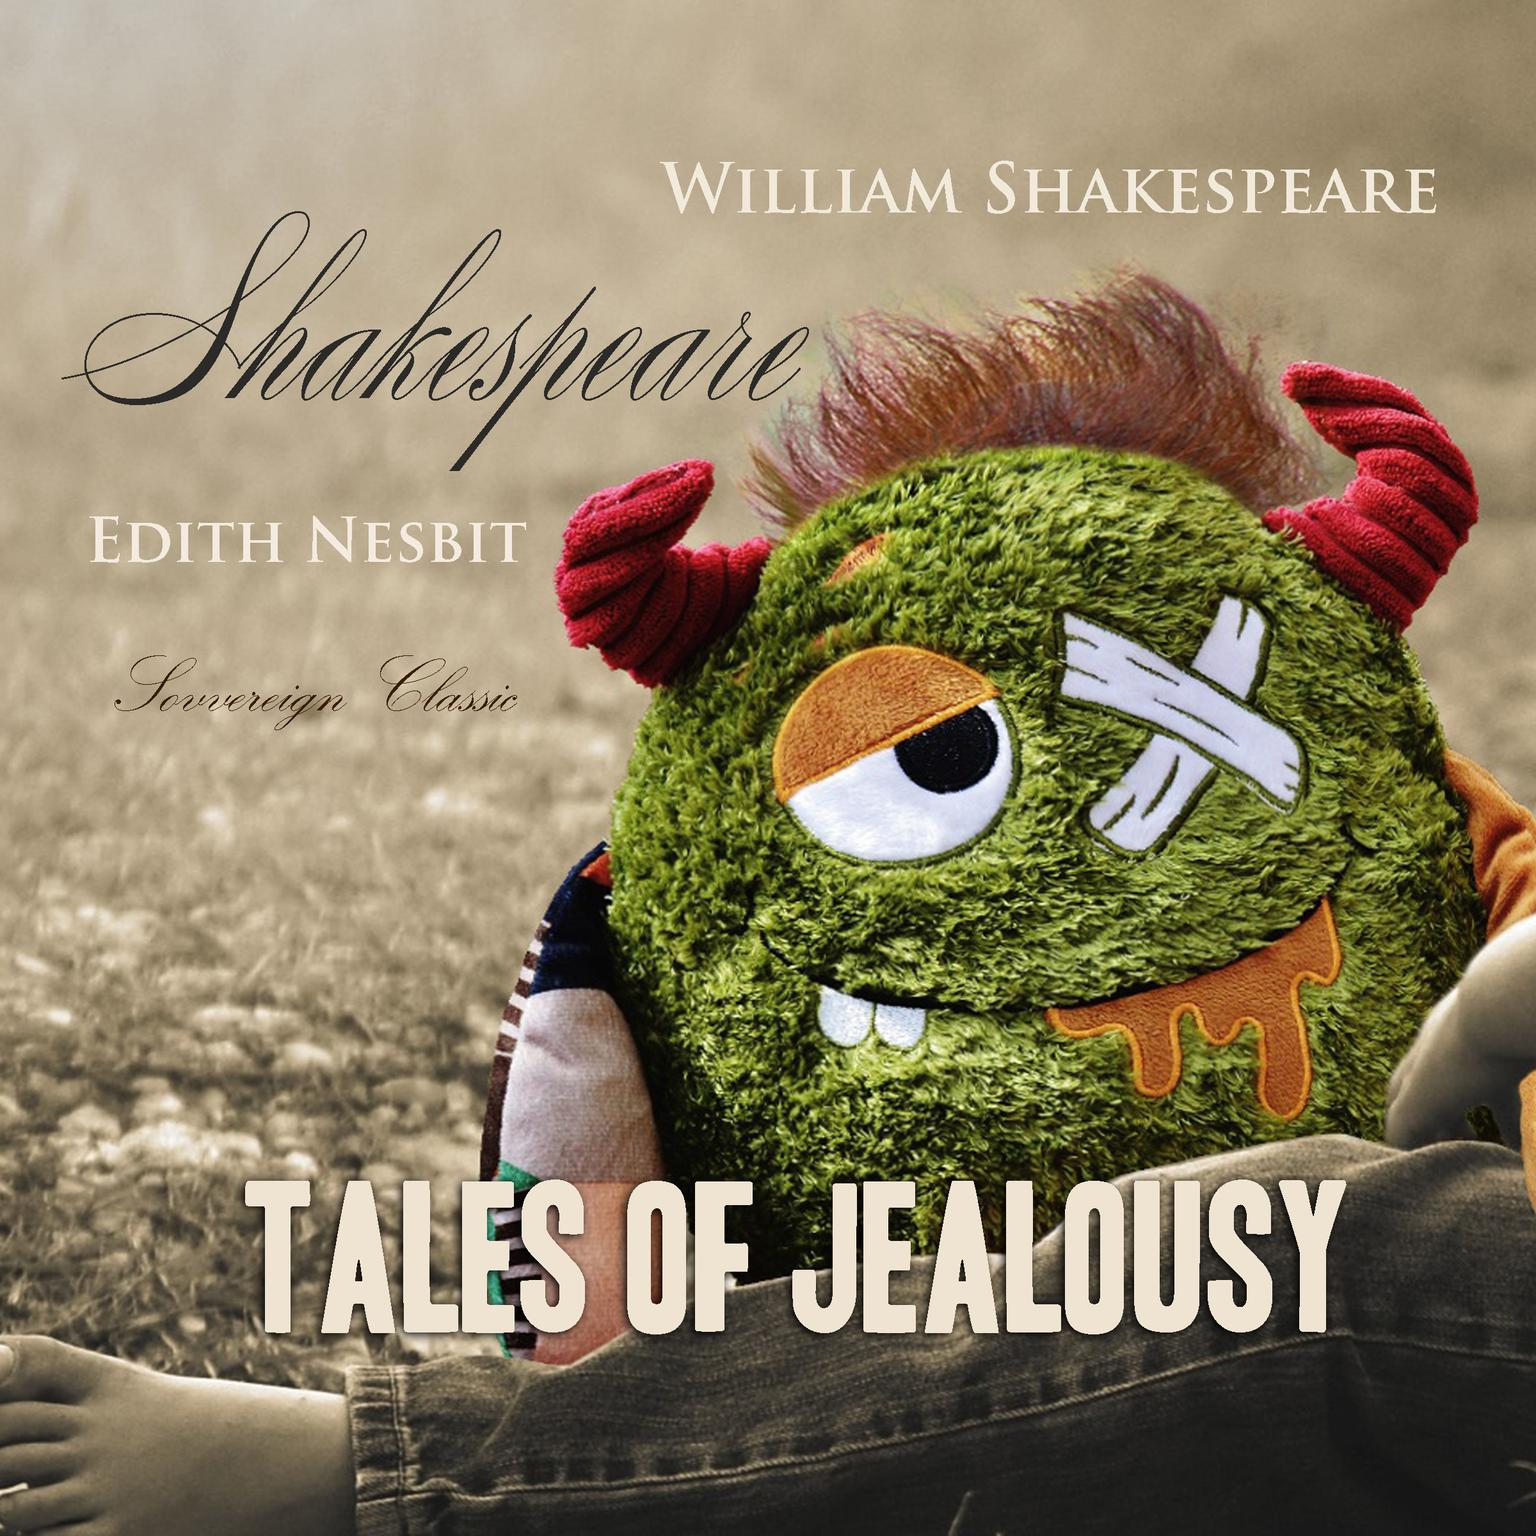 Printable Shakespeare Tales of Jealousy Audiobook Cover Art